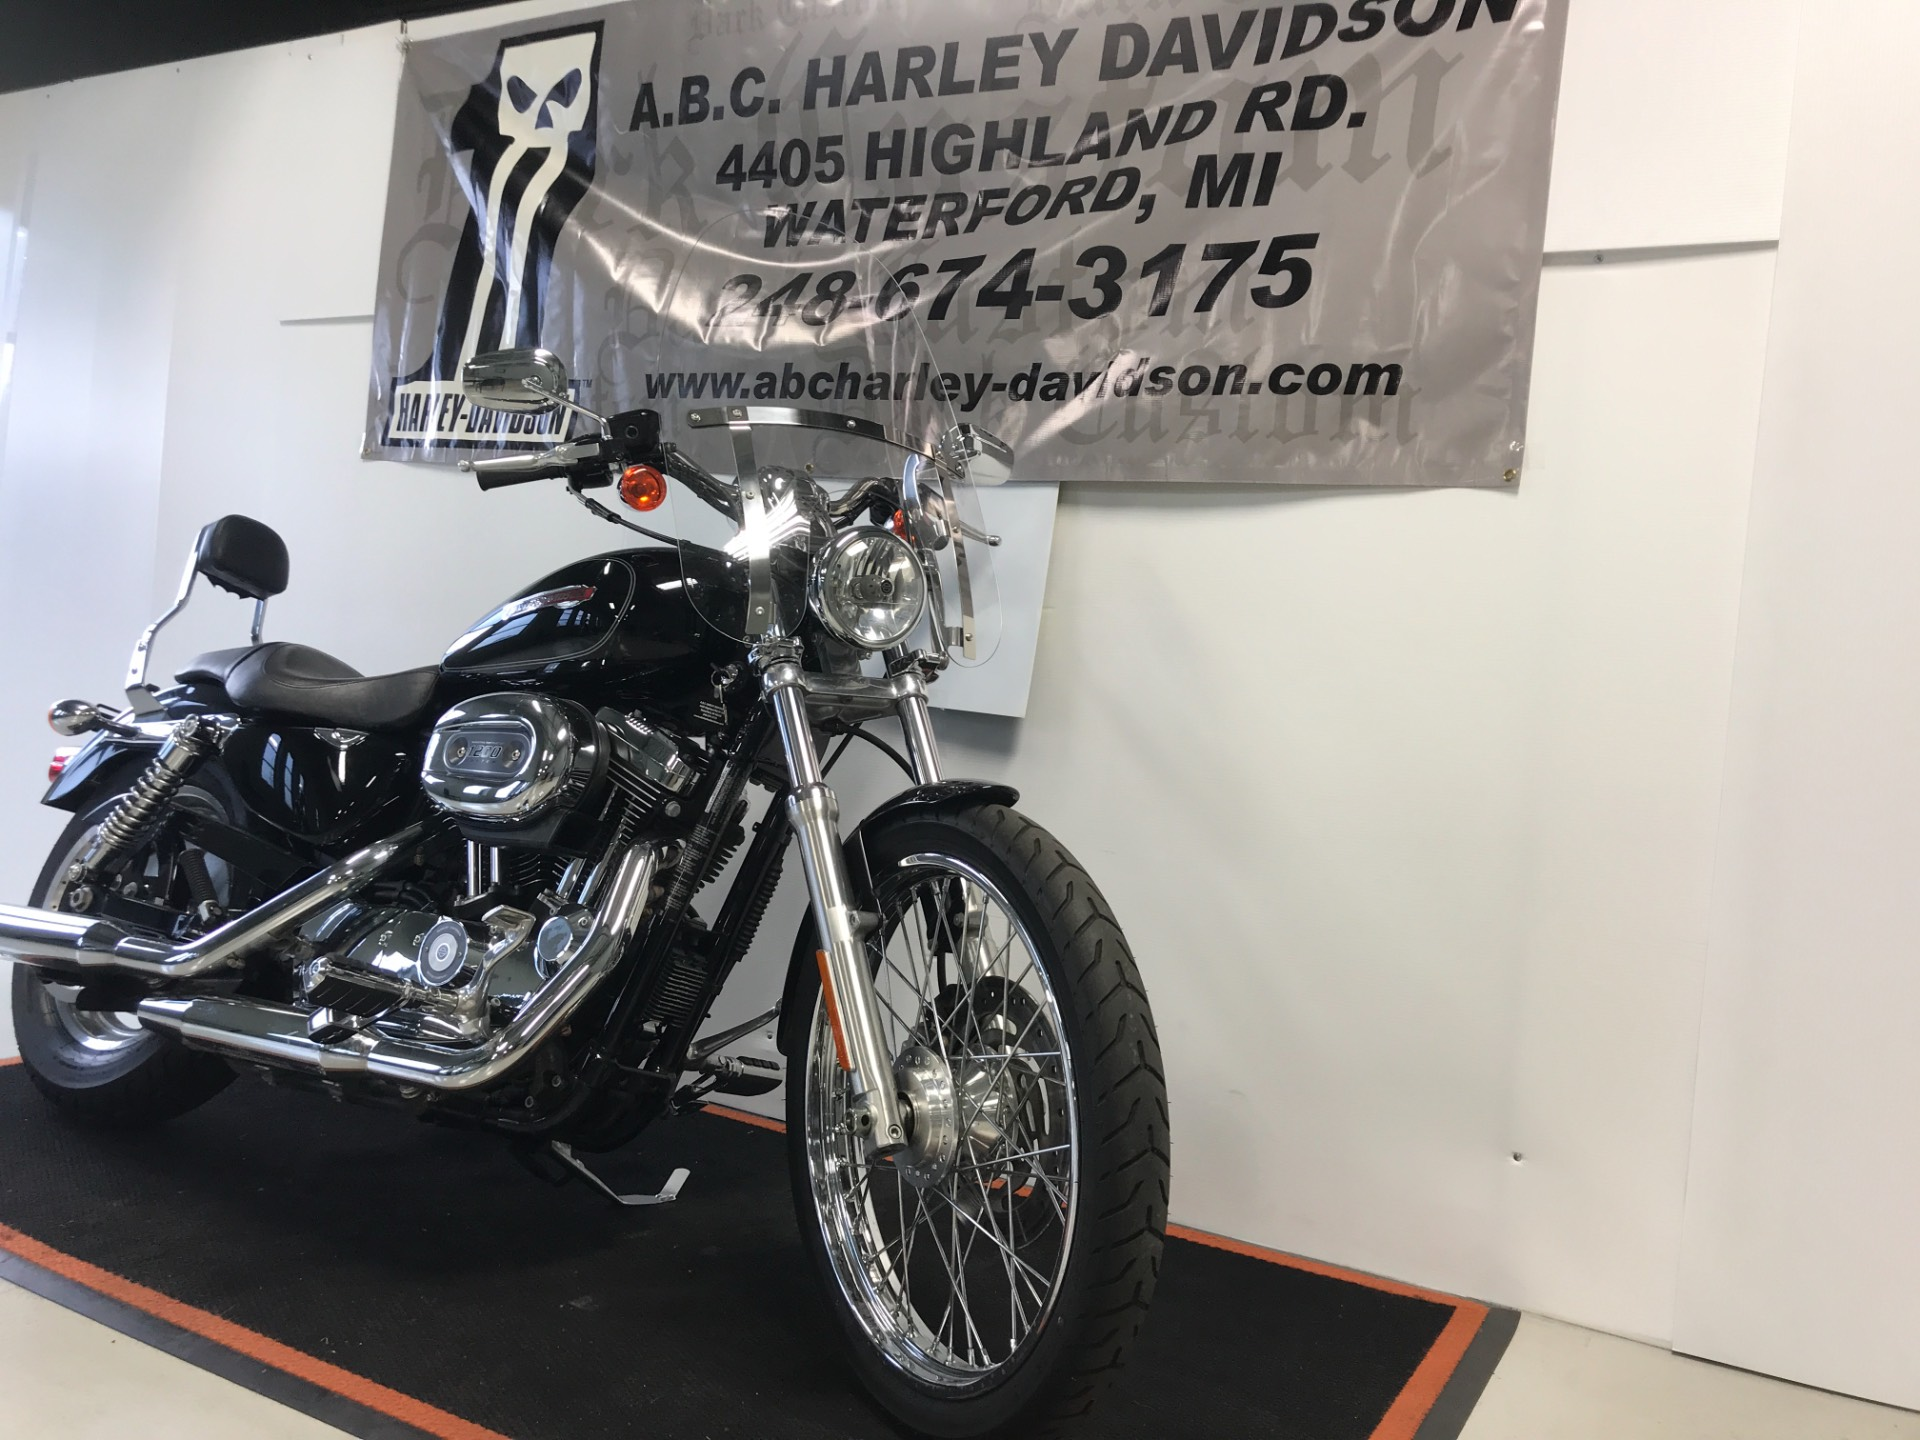 2009 Harley-Davidson Sportster 1200 in Waterford, Michigan